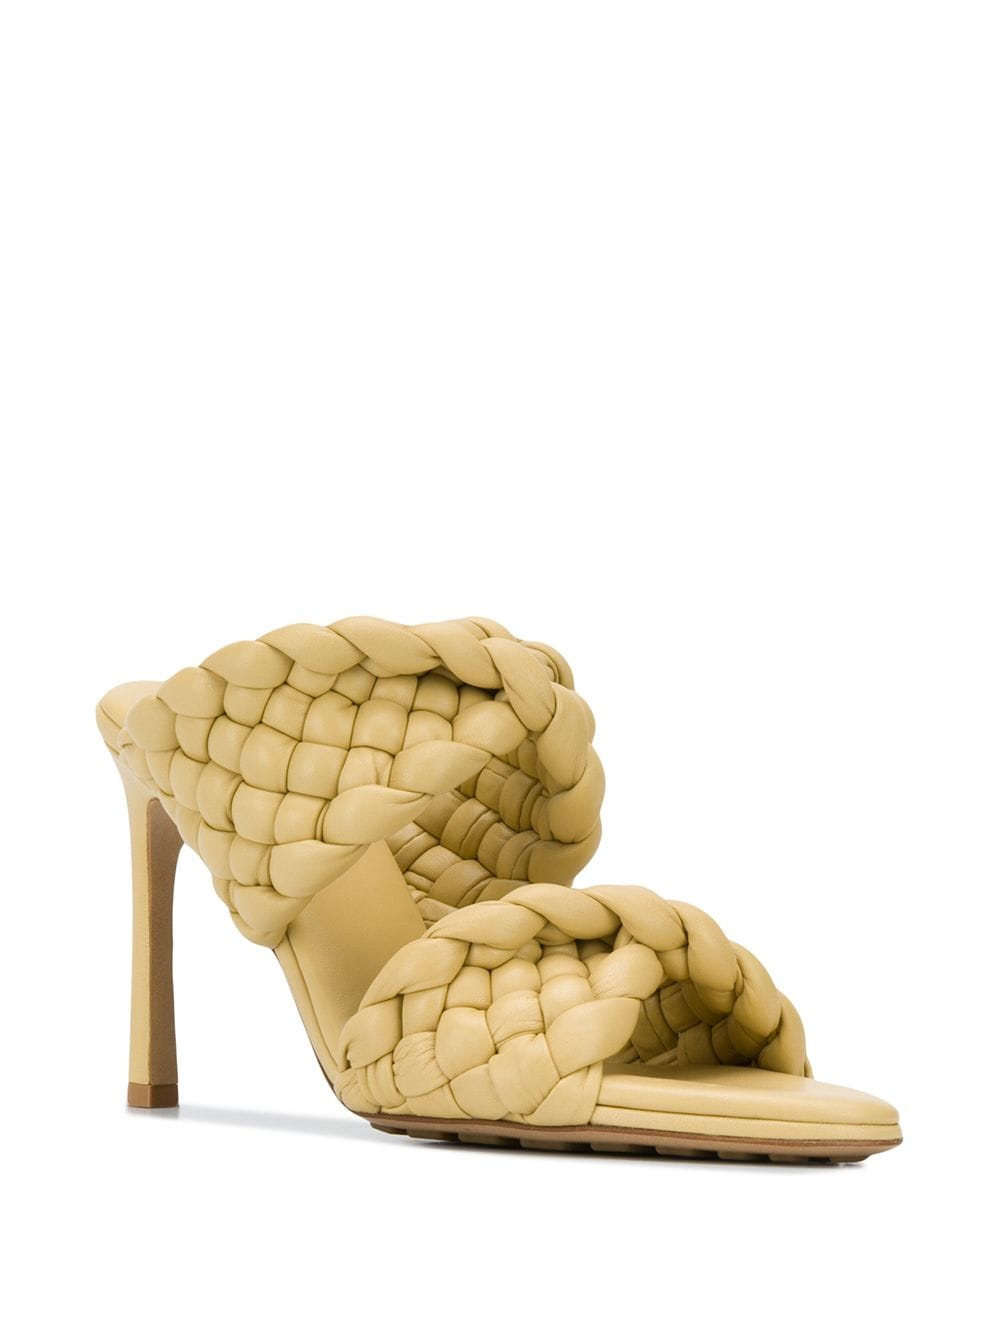 The Curve Sandal - Yellow 3/4